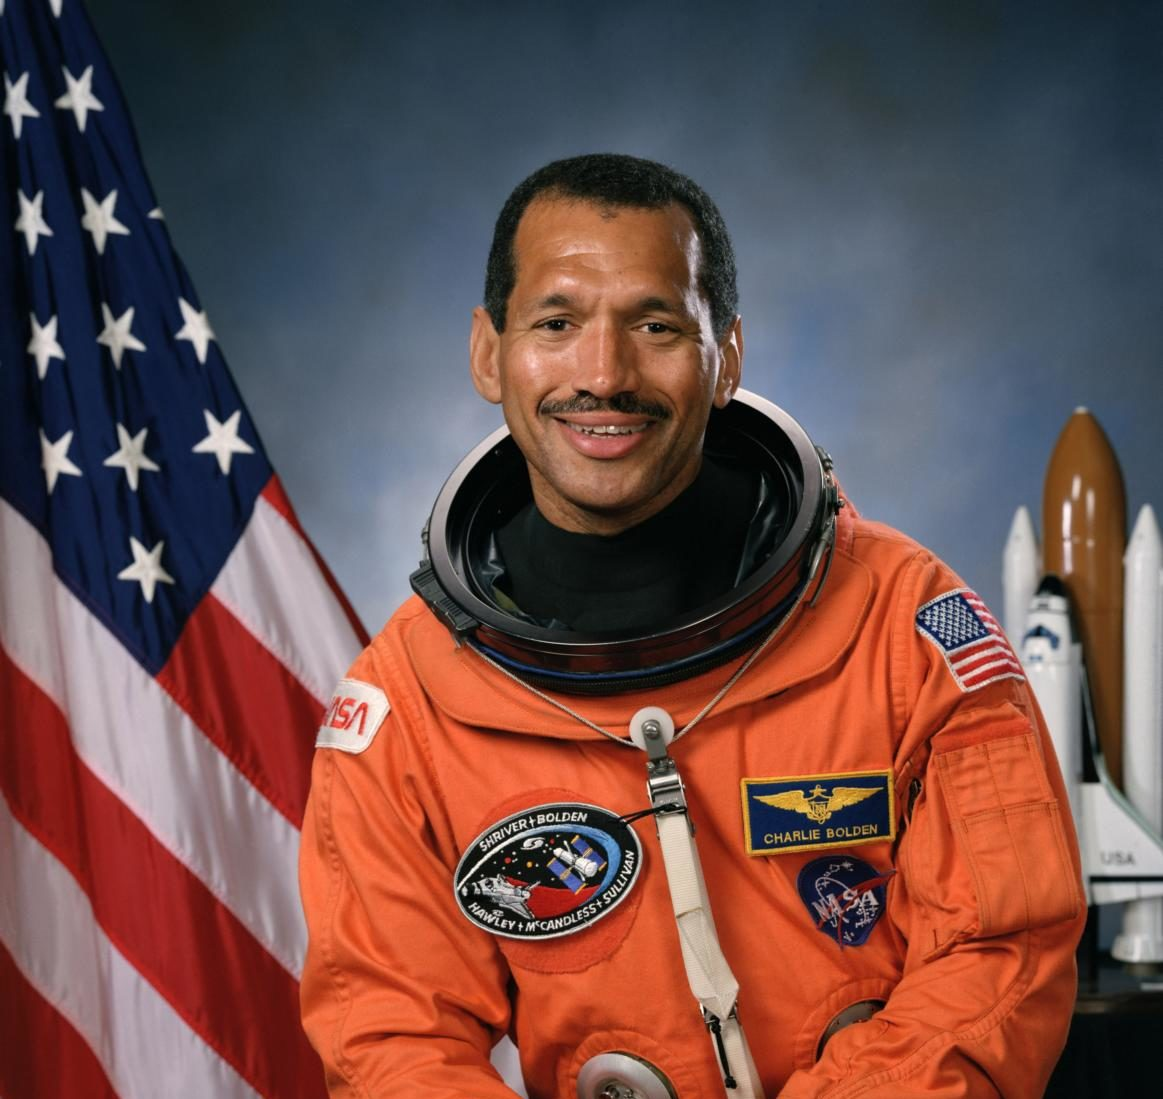 Astronaut Charles F. Bolden Jr.  Picture obtained under public domain